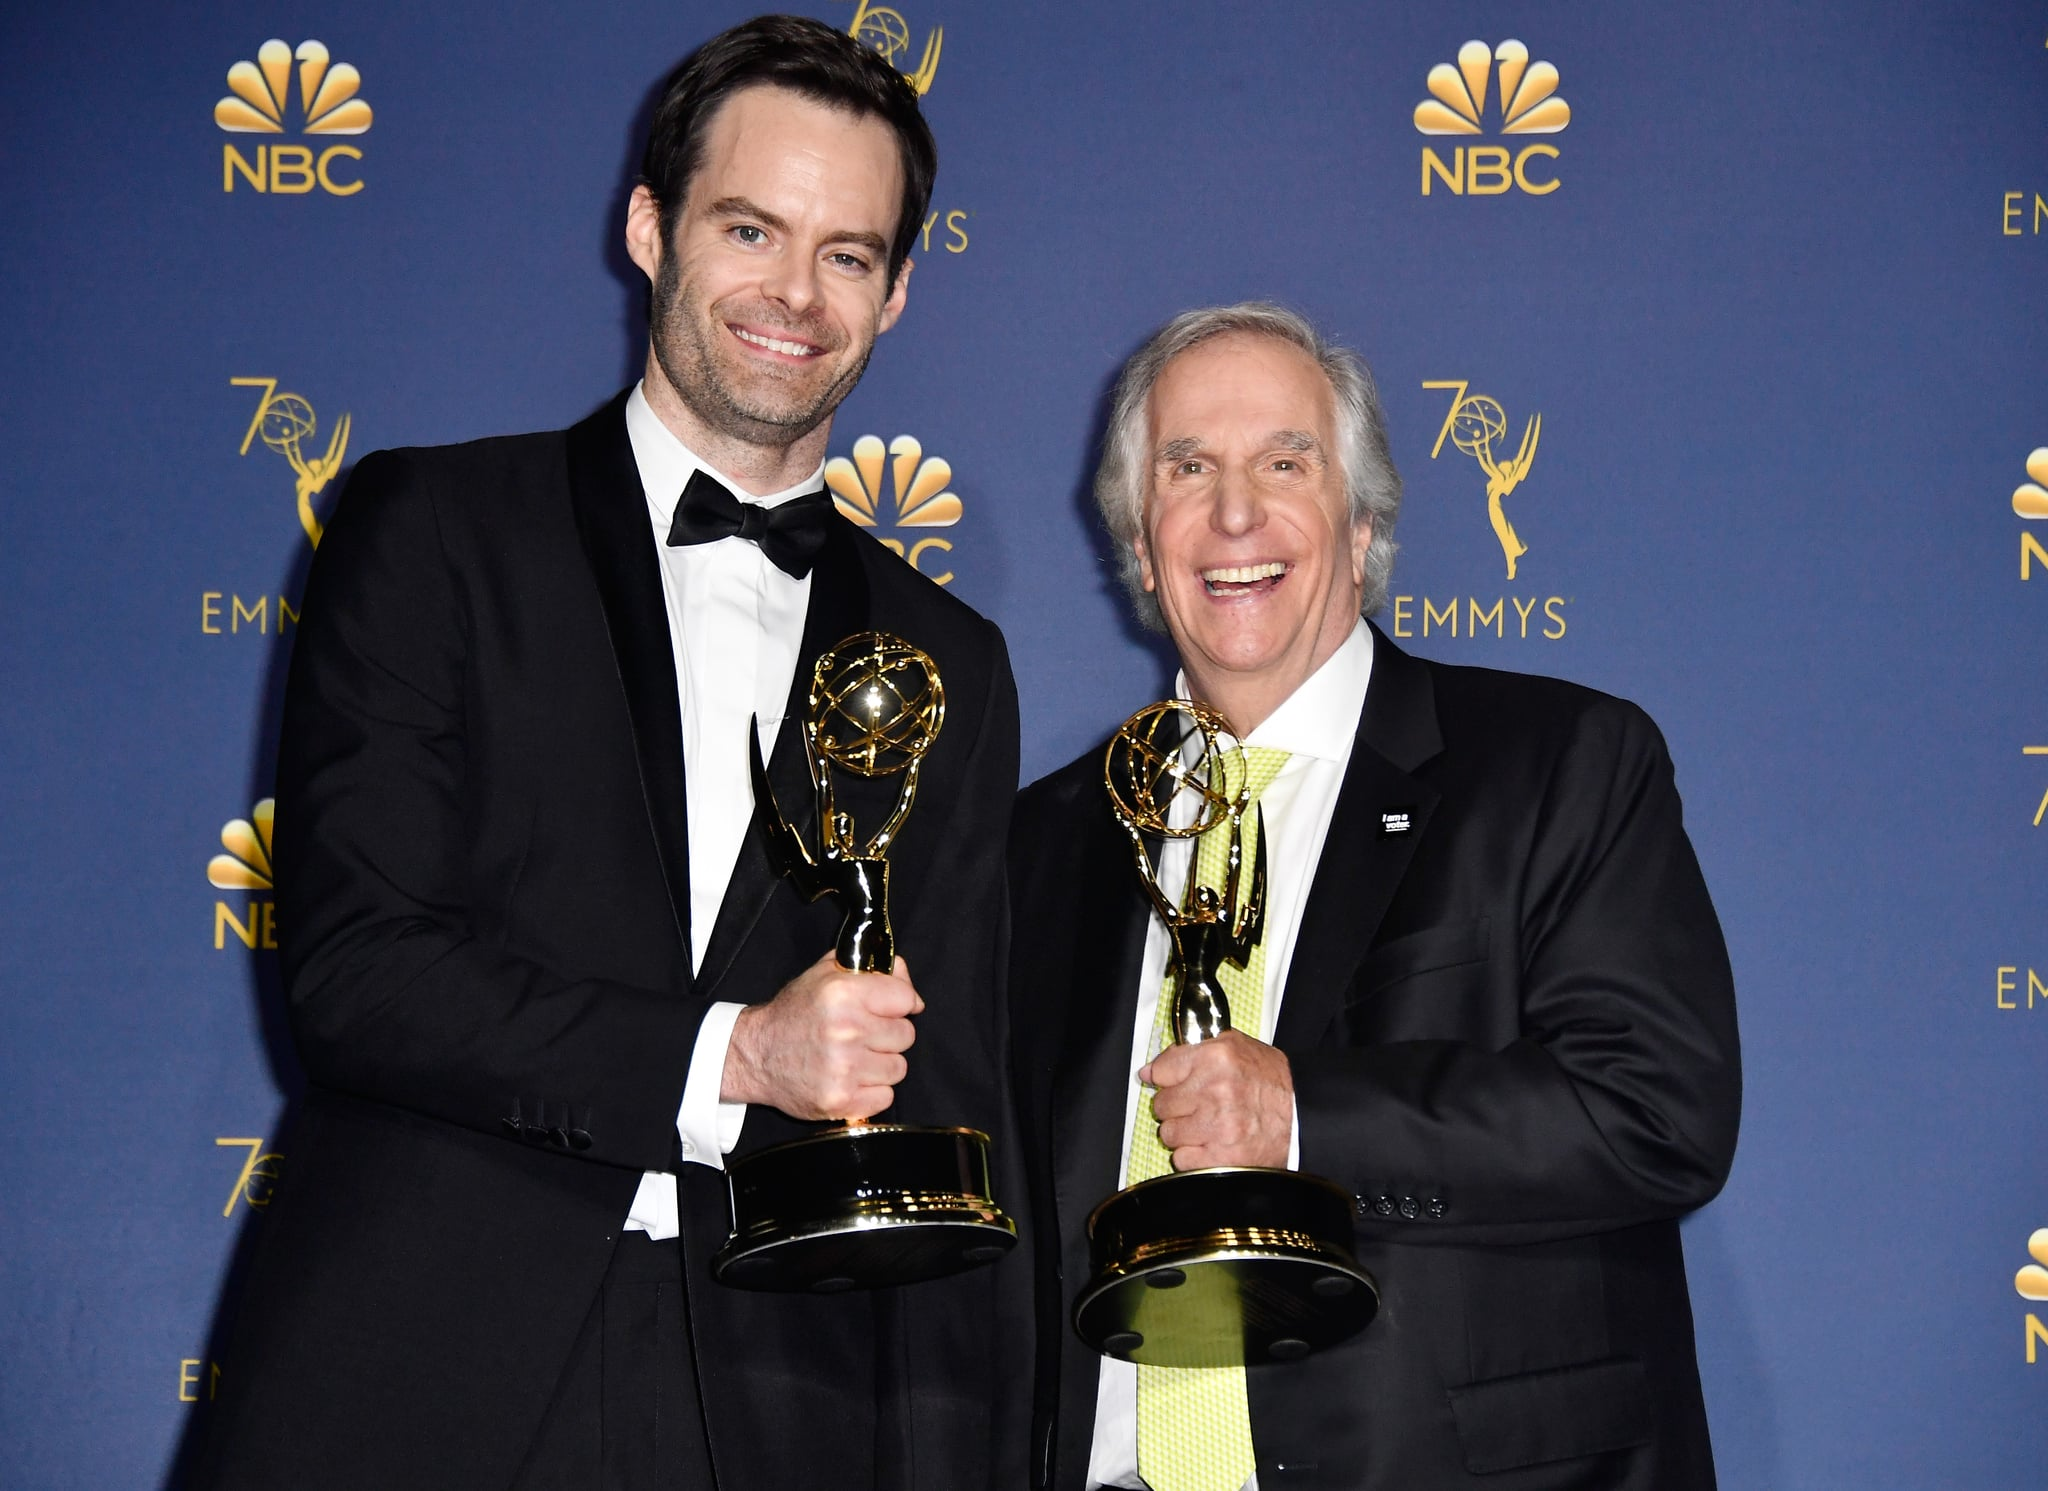 LOS ANGELES, CA - SEPTEMBER 17:  Outstanding Lead Actor in a Comedy Series Bill Hader (L) and Outstanding Supporting Actor in a Comedy Series Henry Winkler, pose in the press room during the 70th Emmy Awards at Microsoft Theater on September 17, 2018 in Los Angeles, California.  (Photo by Frazer Harrison/Getty Images)